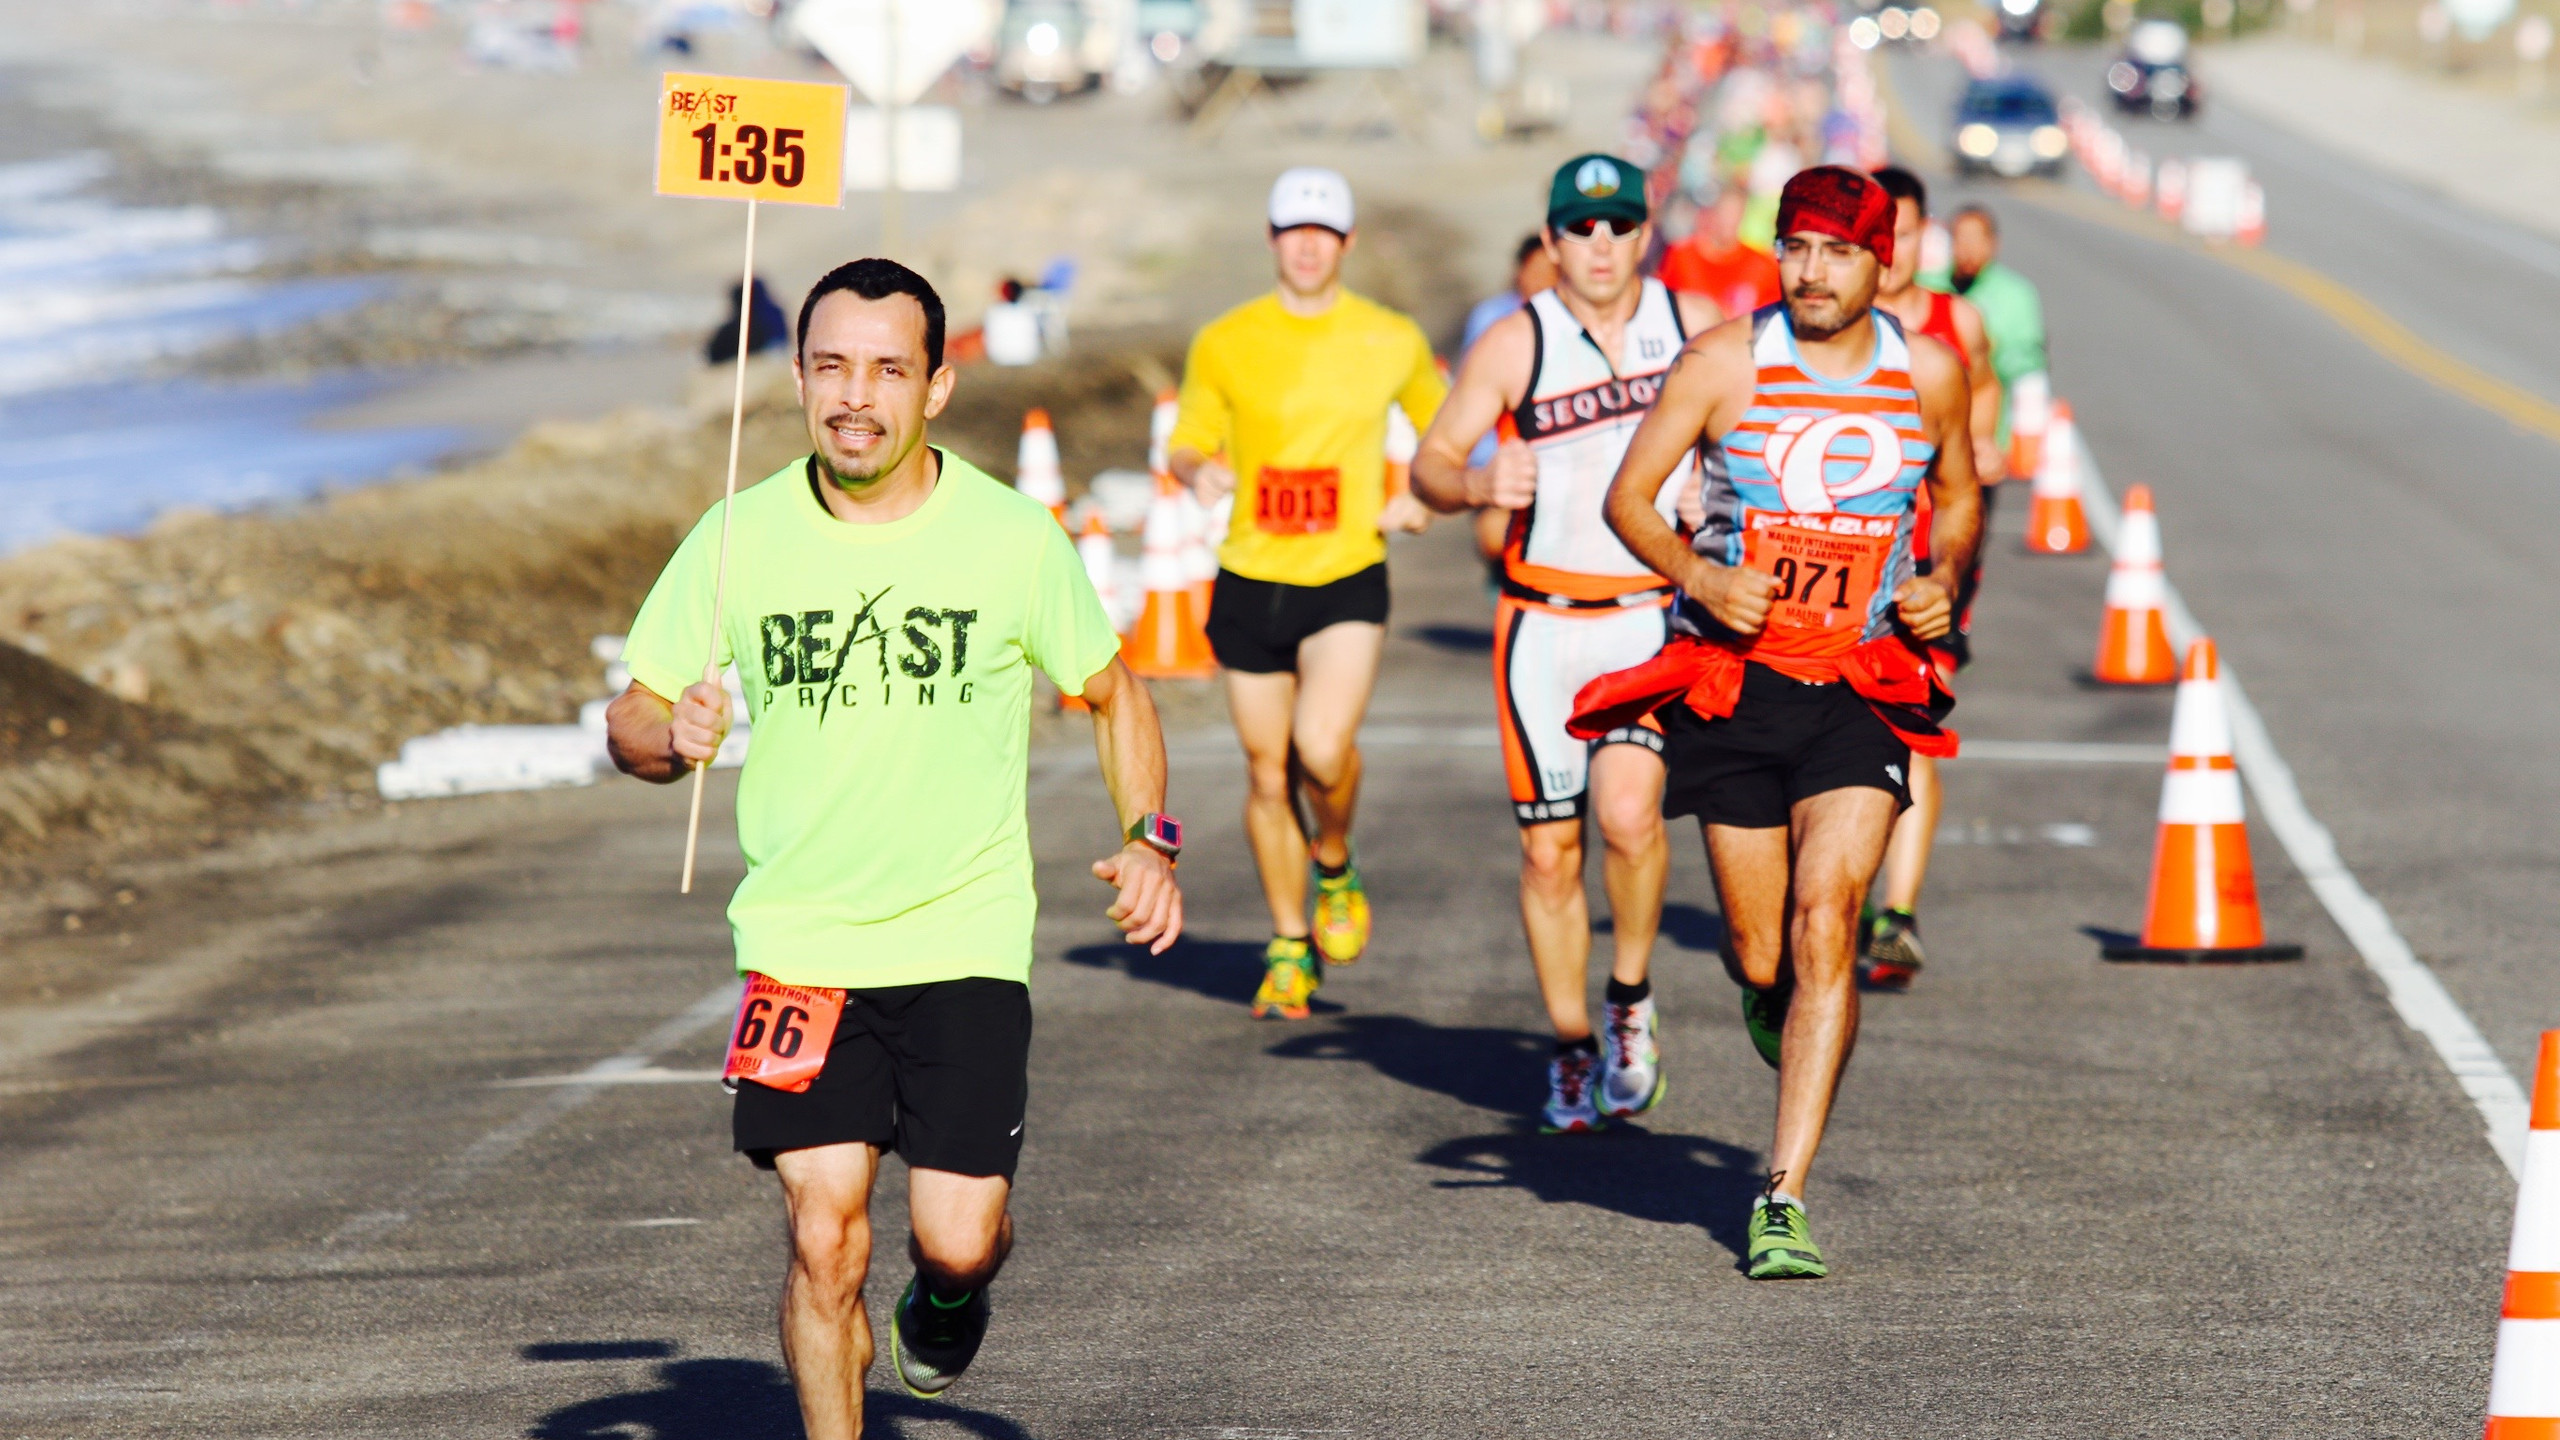 Race Pacers makes it easy to achieve your personal goals.